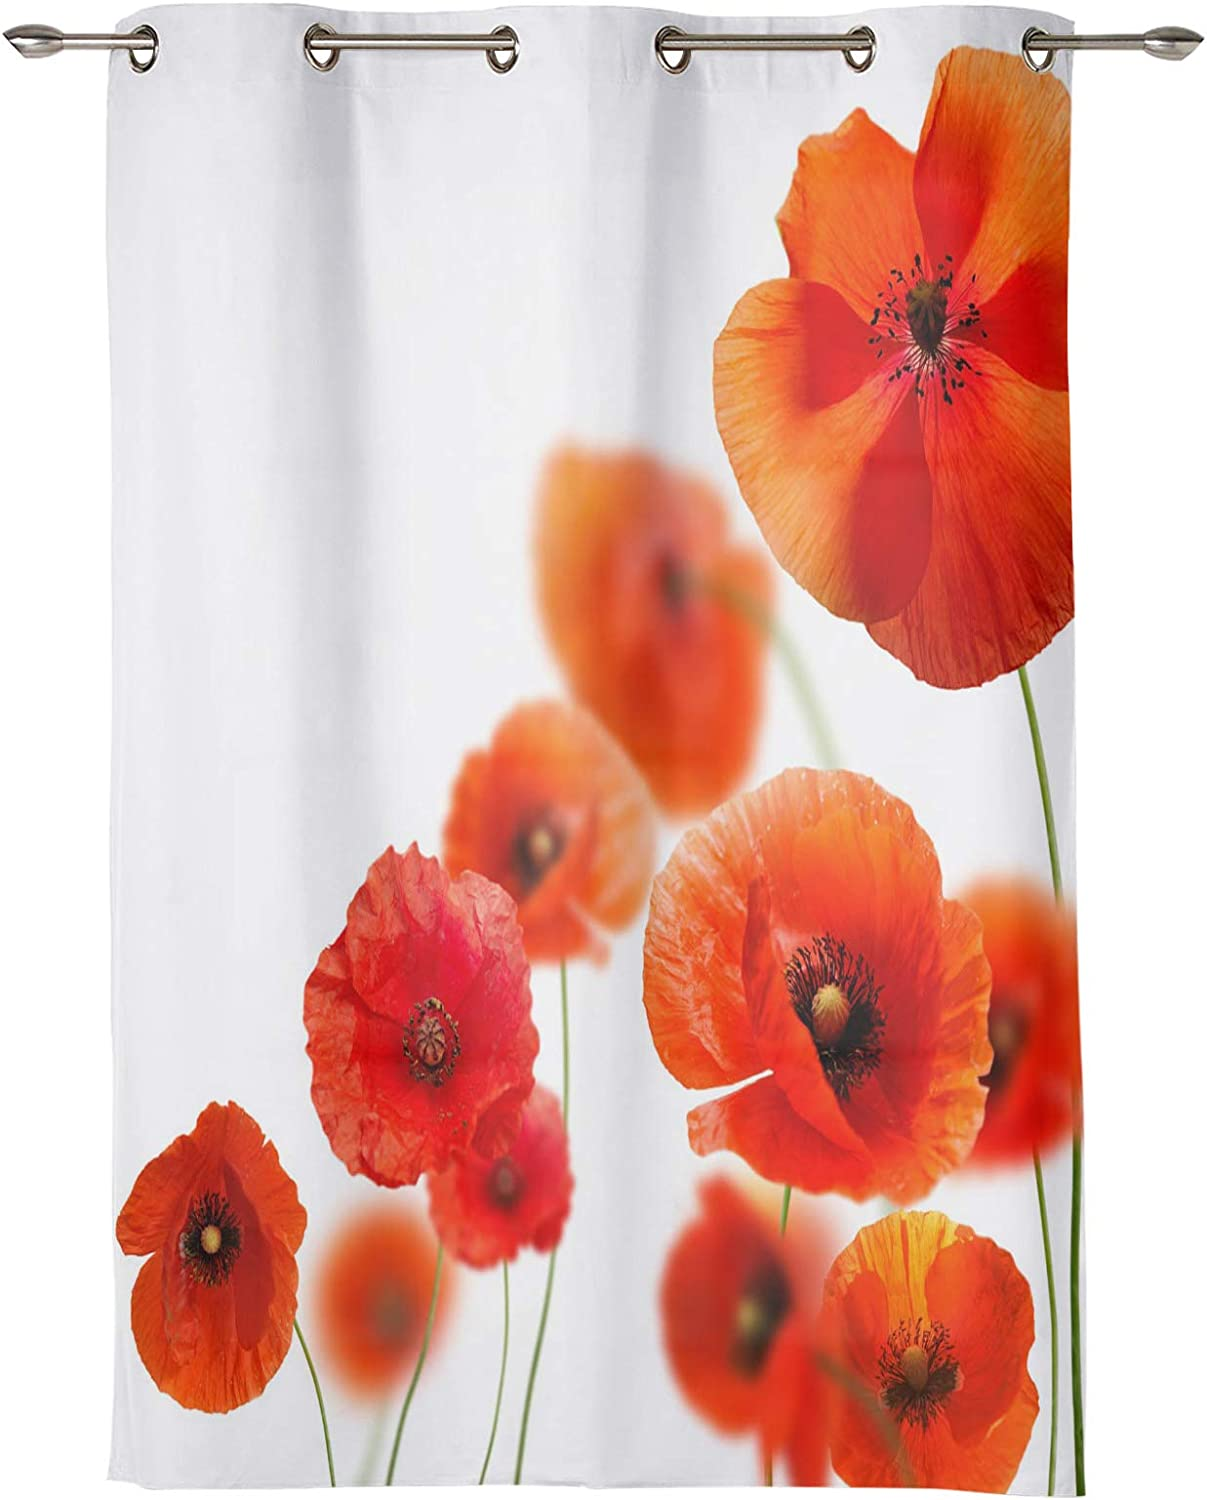 Window Curtains Red Gradient Direct store Poppy with Blooming Art 2021new shipping free Flower Grom